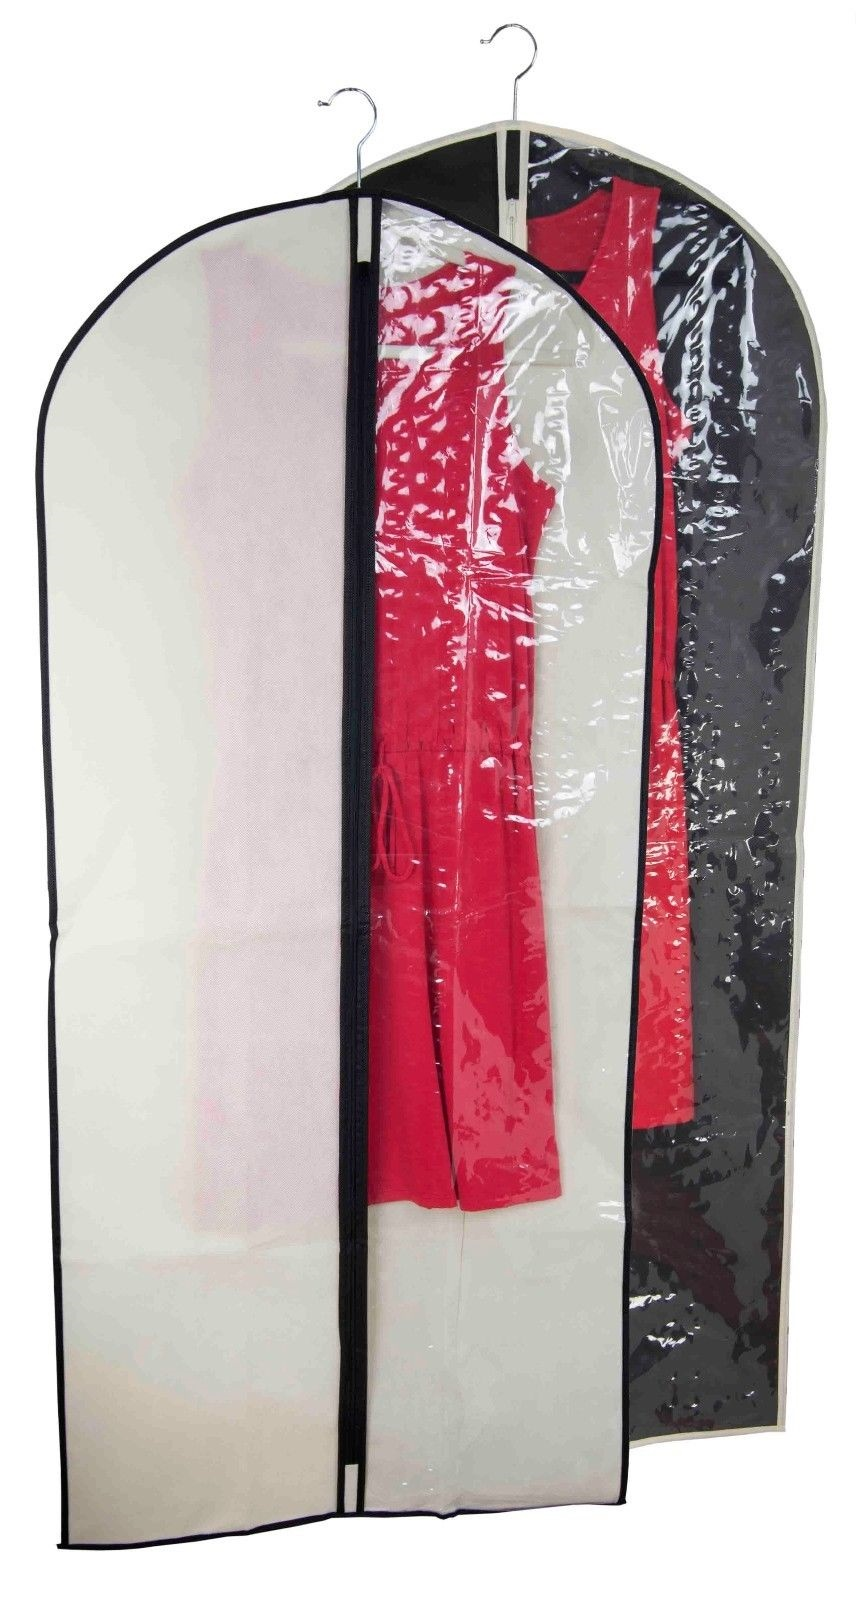 4fa247274bd2 Details about Sunbeam NEW Garment Dress Bag Clear Plastic Front Panel Black  or White - SB30314